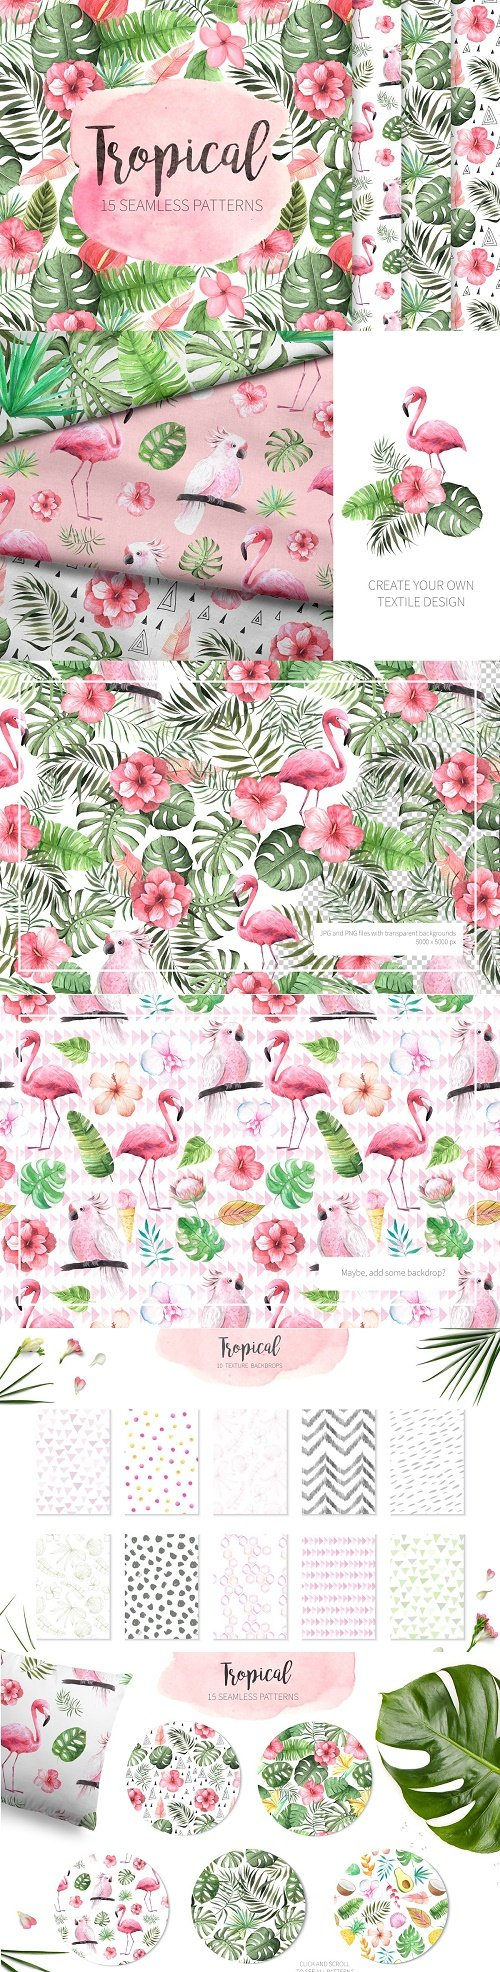 15 Watercolor Tropical Patterns Set - 2805066